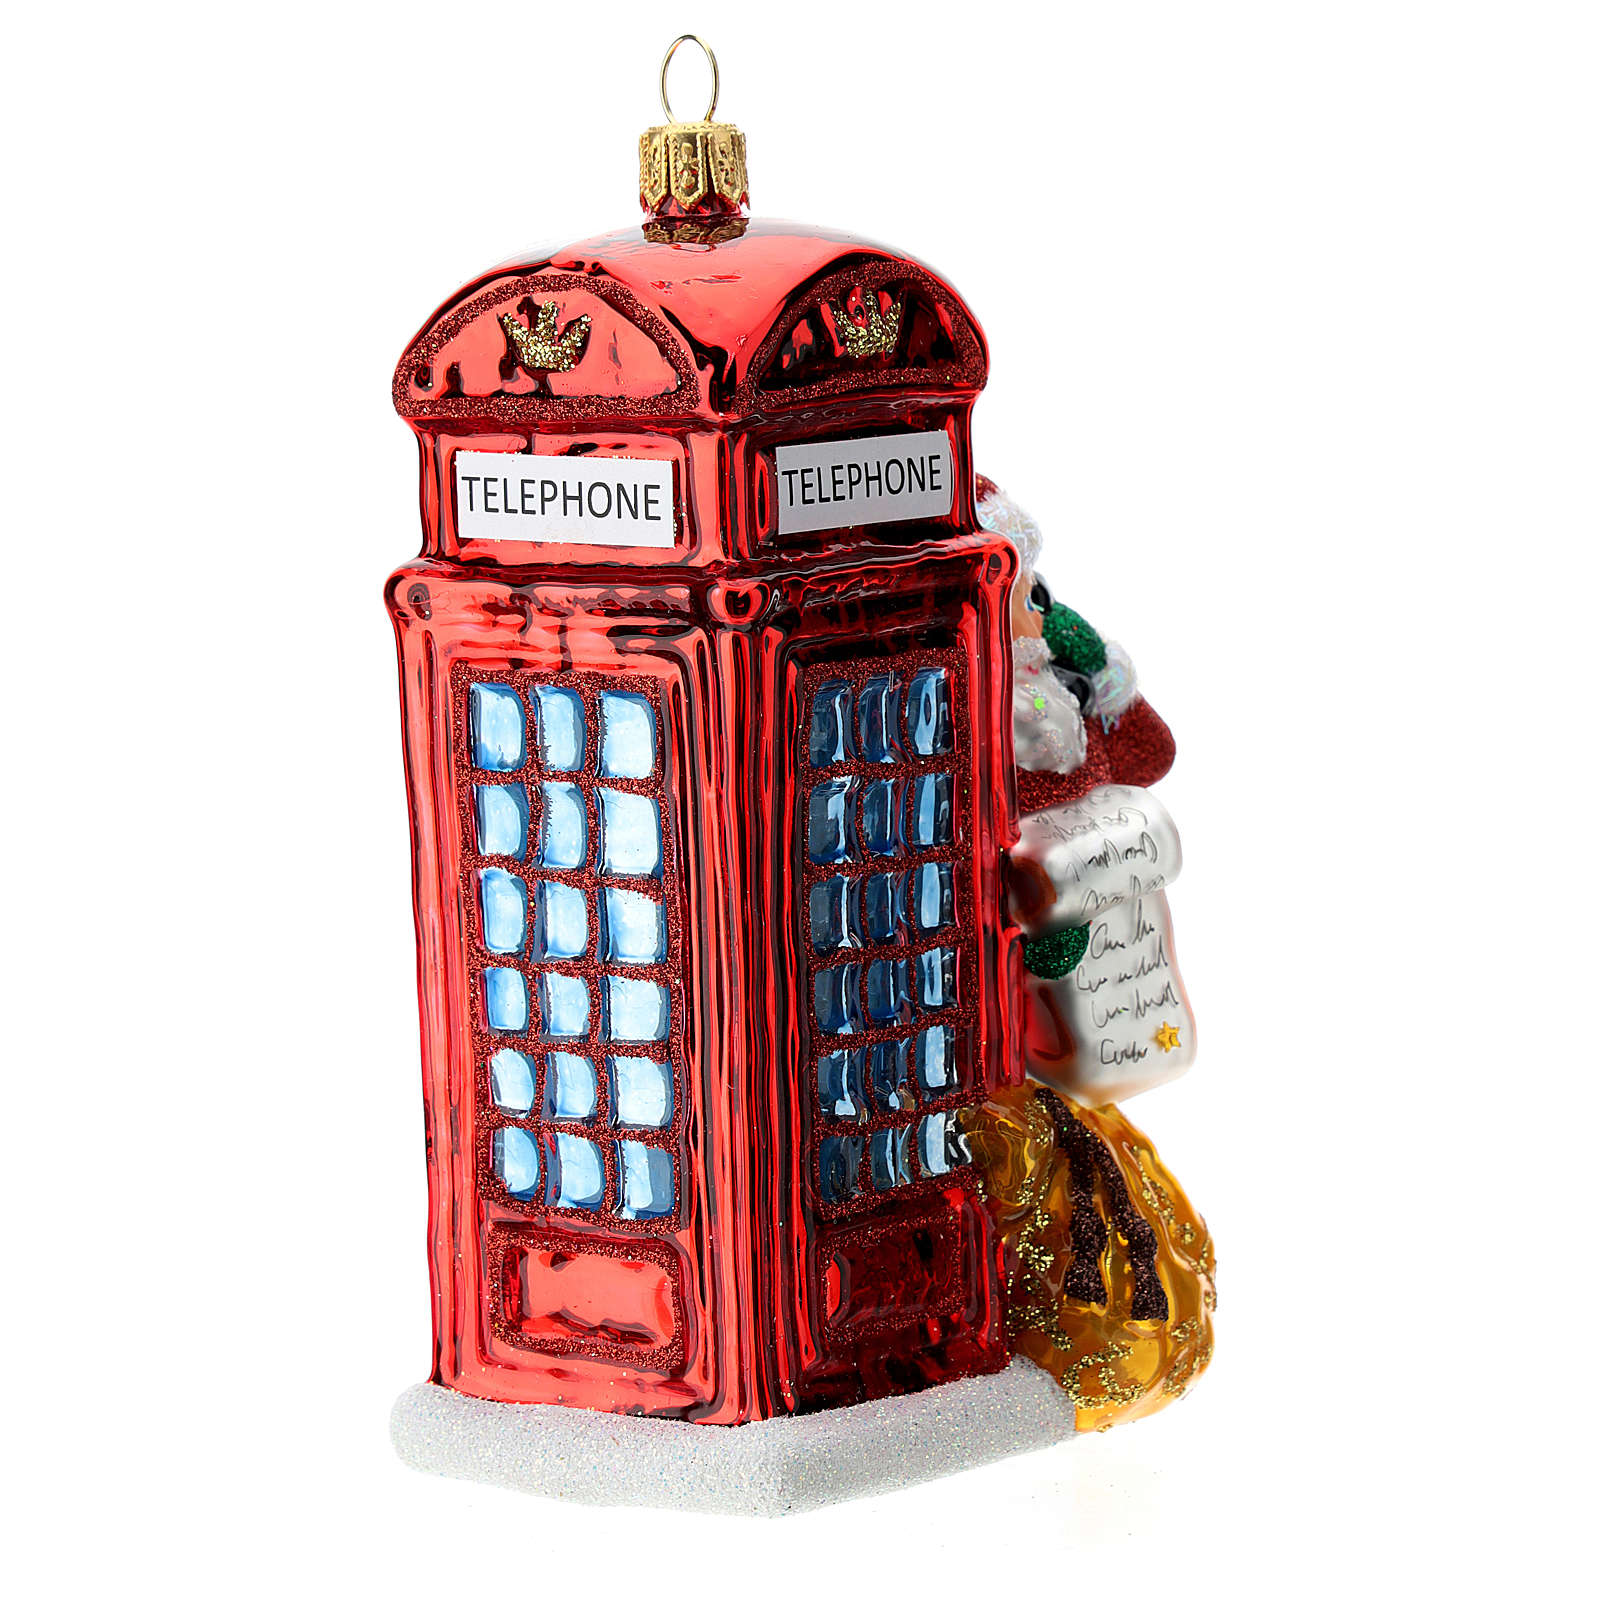 Blown glass Christmas ornament, Santa Claus telephone kiosk 4